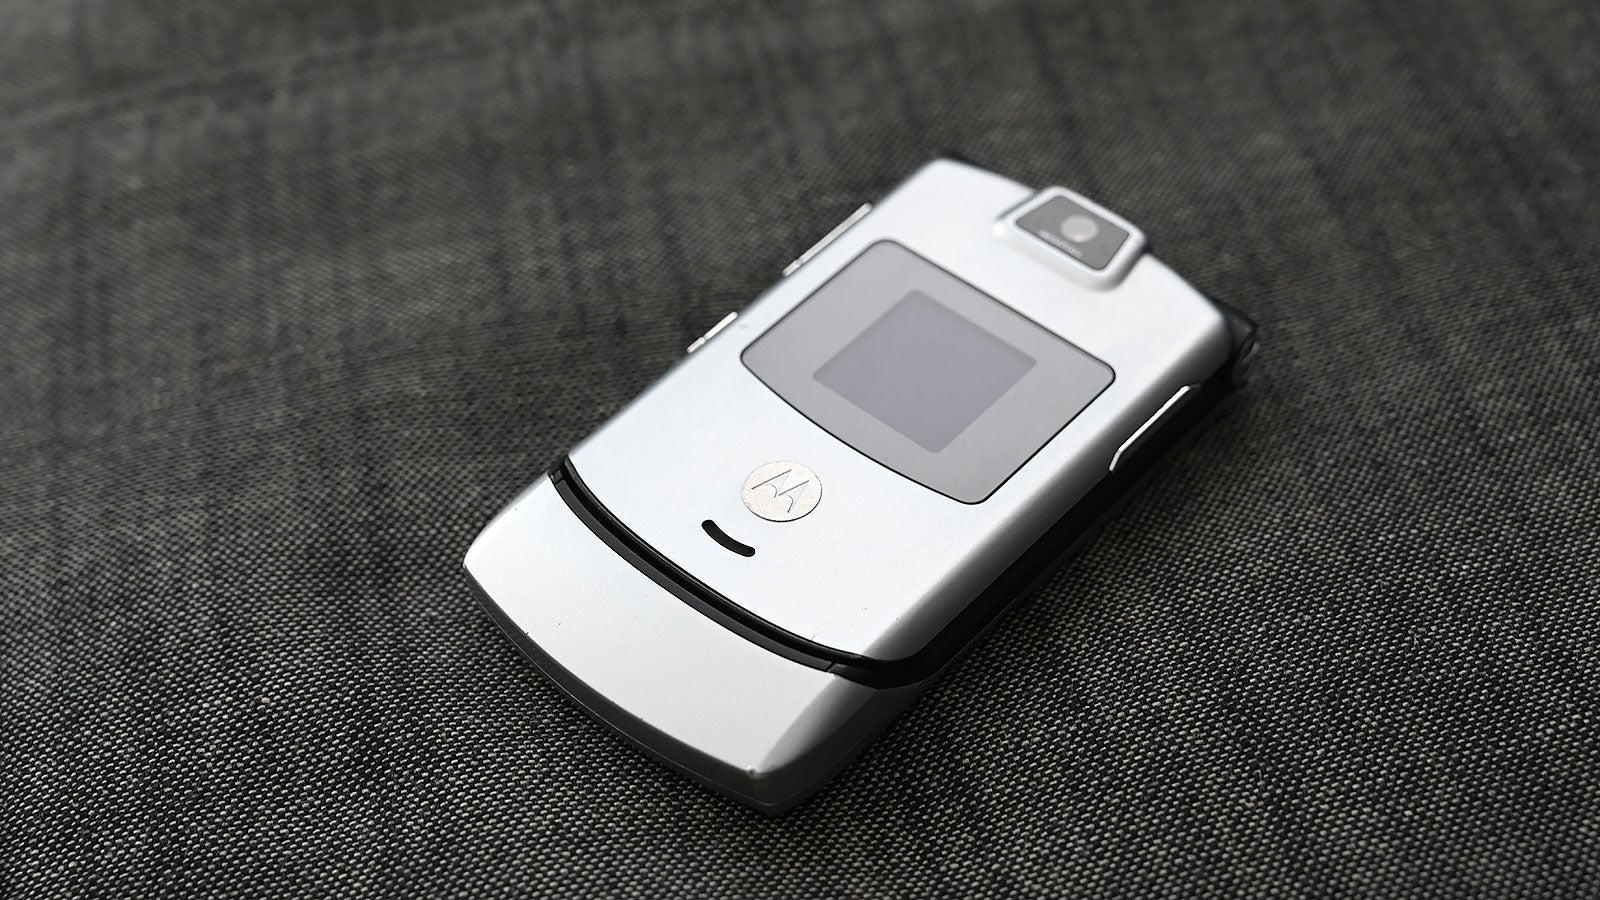 Motorola Reviving The Razr As A $2000 Bendy Phone Is A Bad Idea, But I'm Curious As Hell